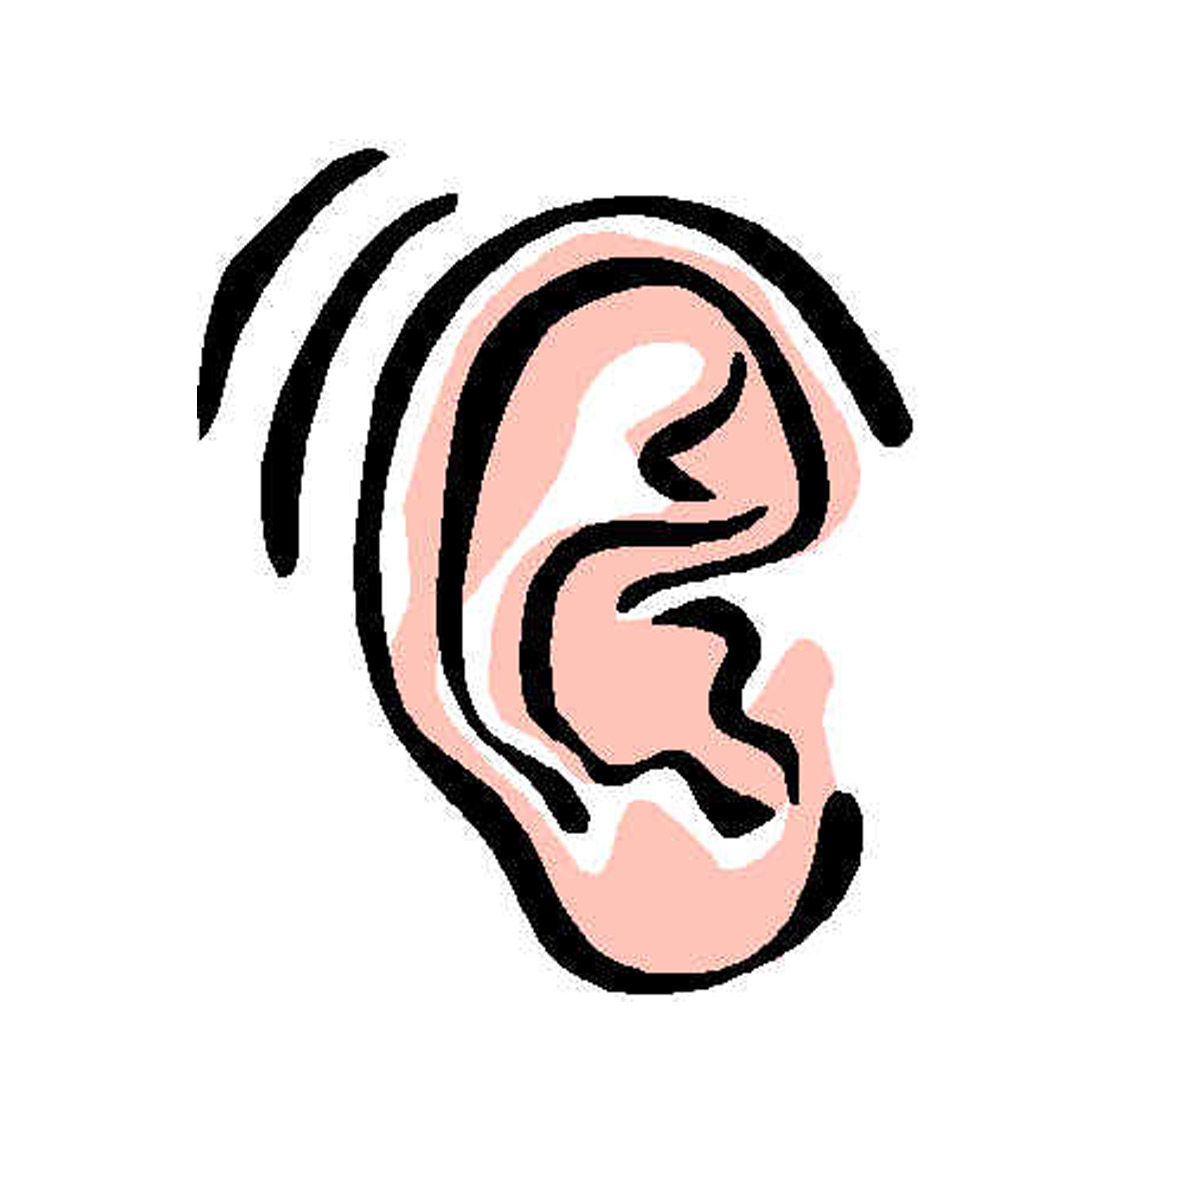 Listening ears clipart mindful.